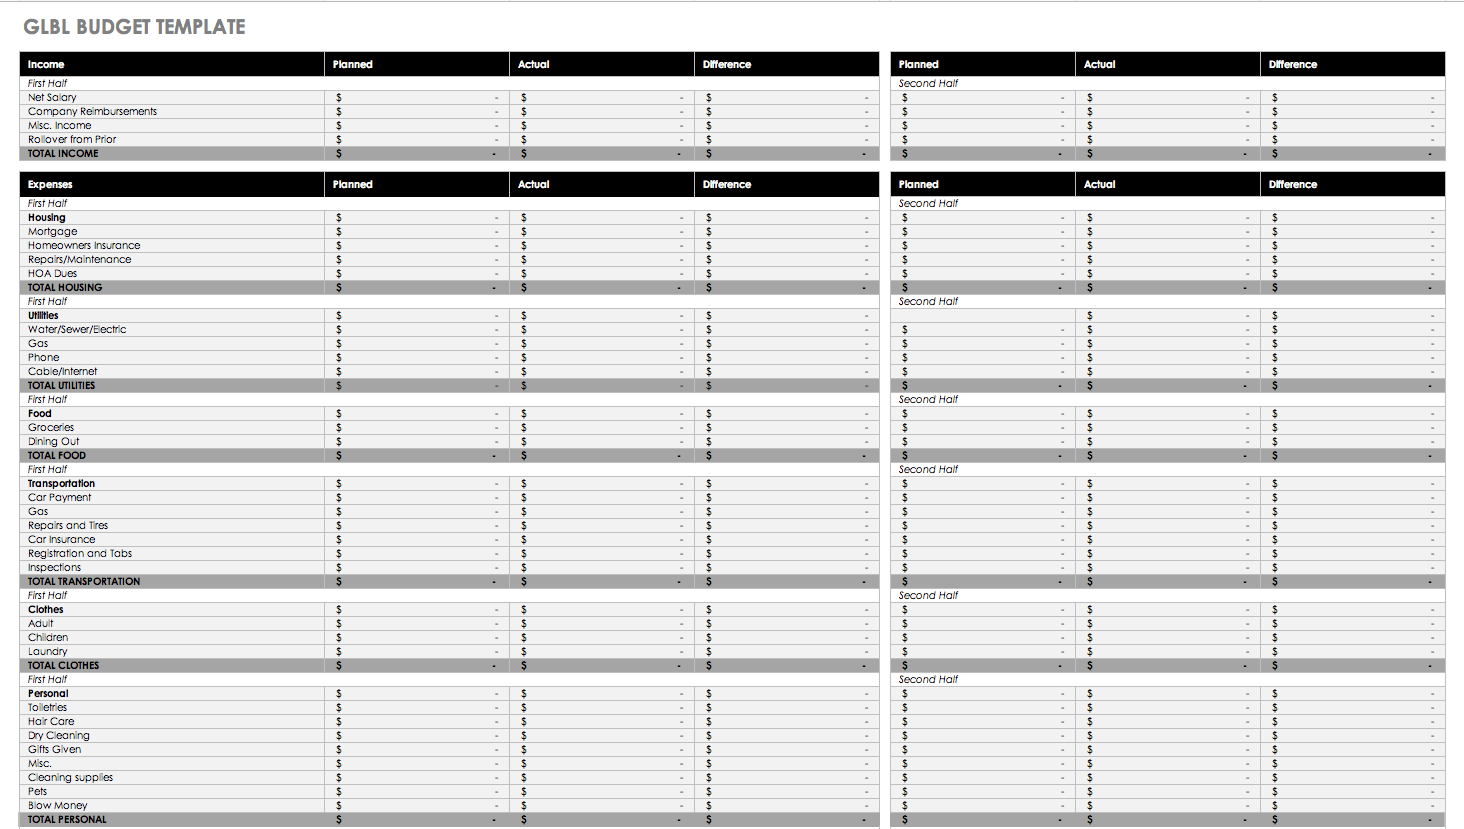 How To Make A Budget Spreadsheet In Excel For Free Budget Templates In Excel For Any Use